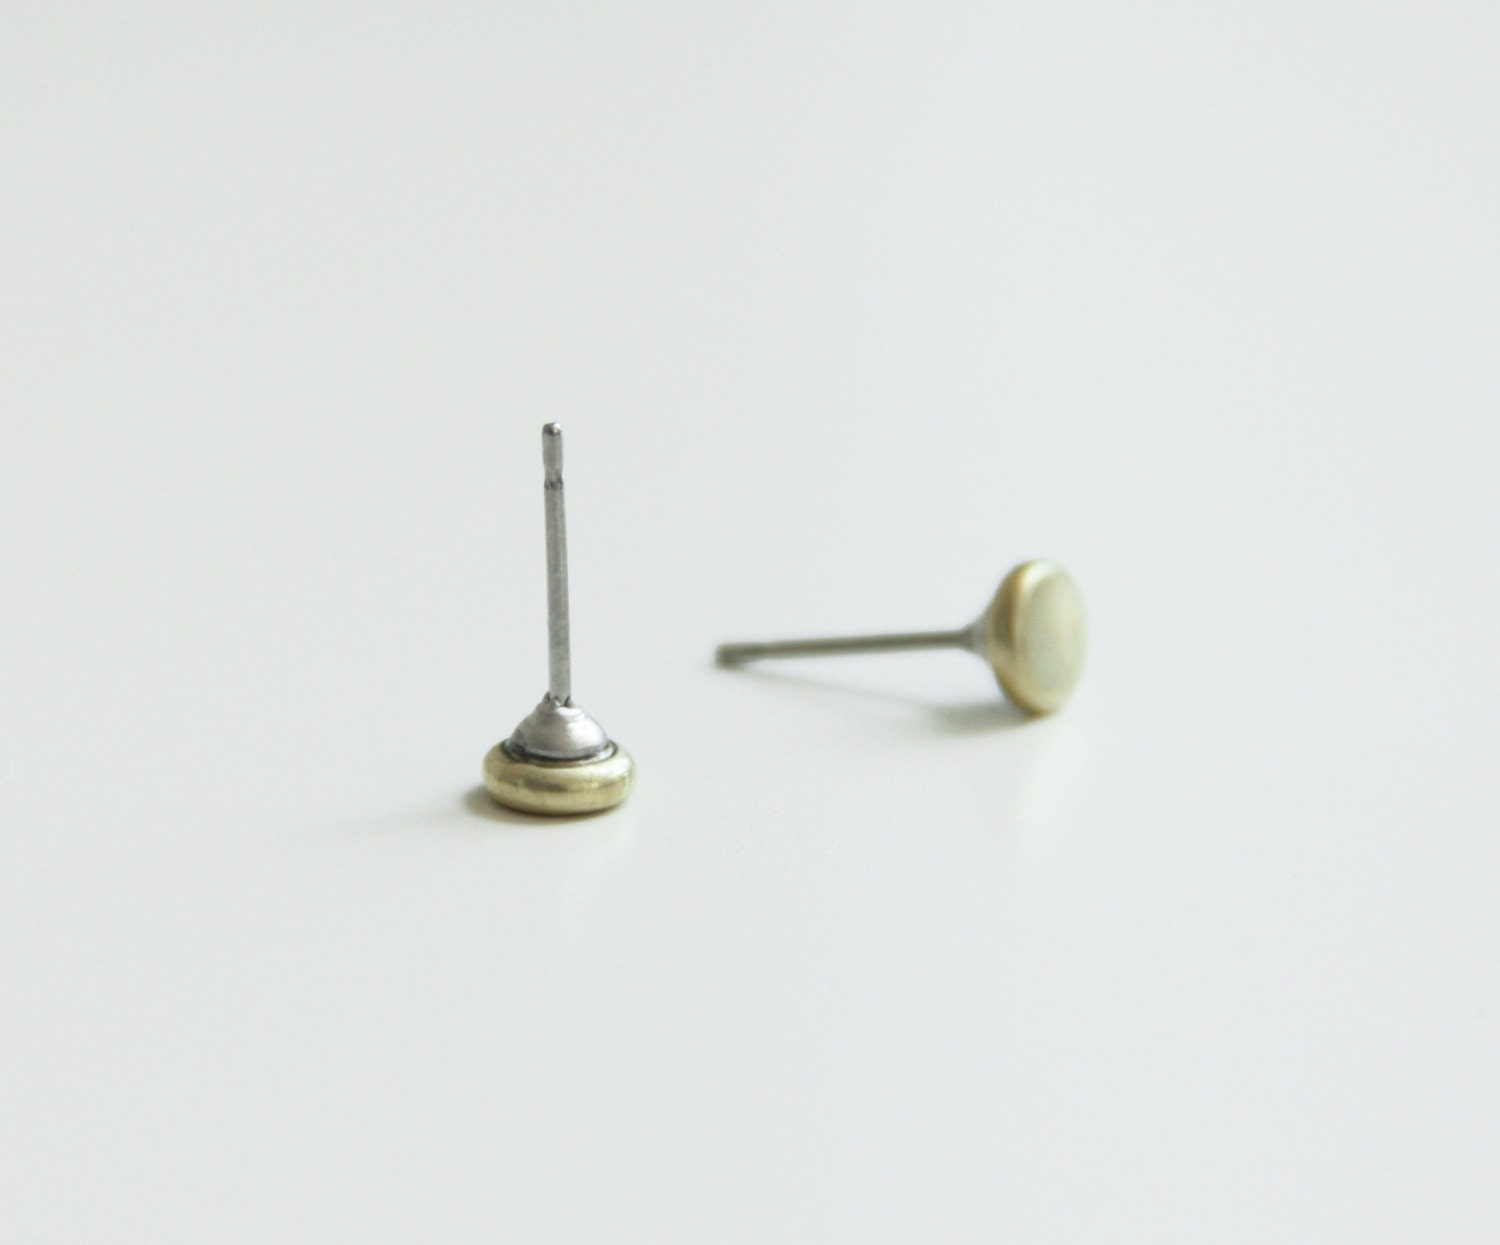 p surgical ball asp earrings size steel was stud